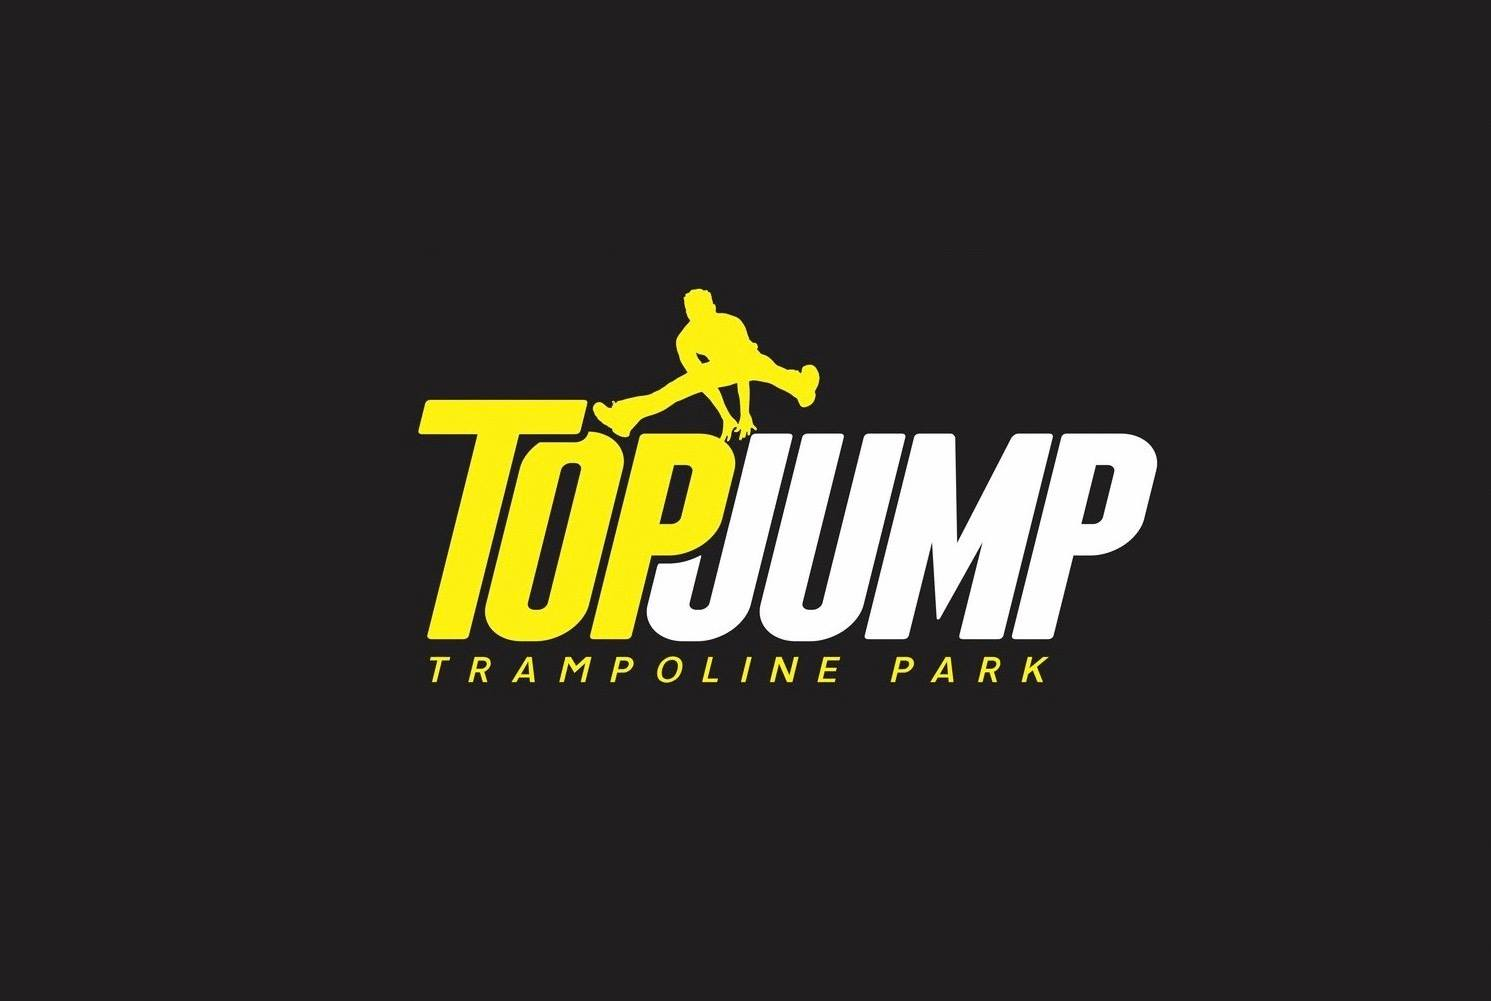 topjump logo